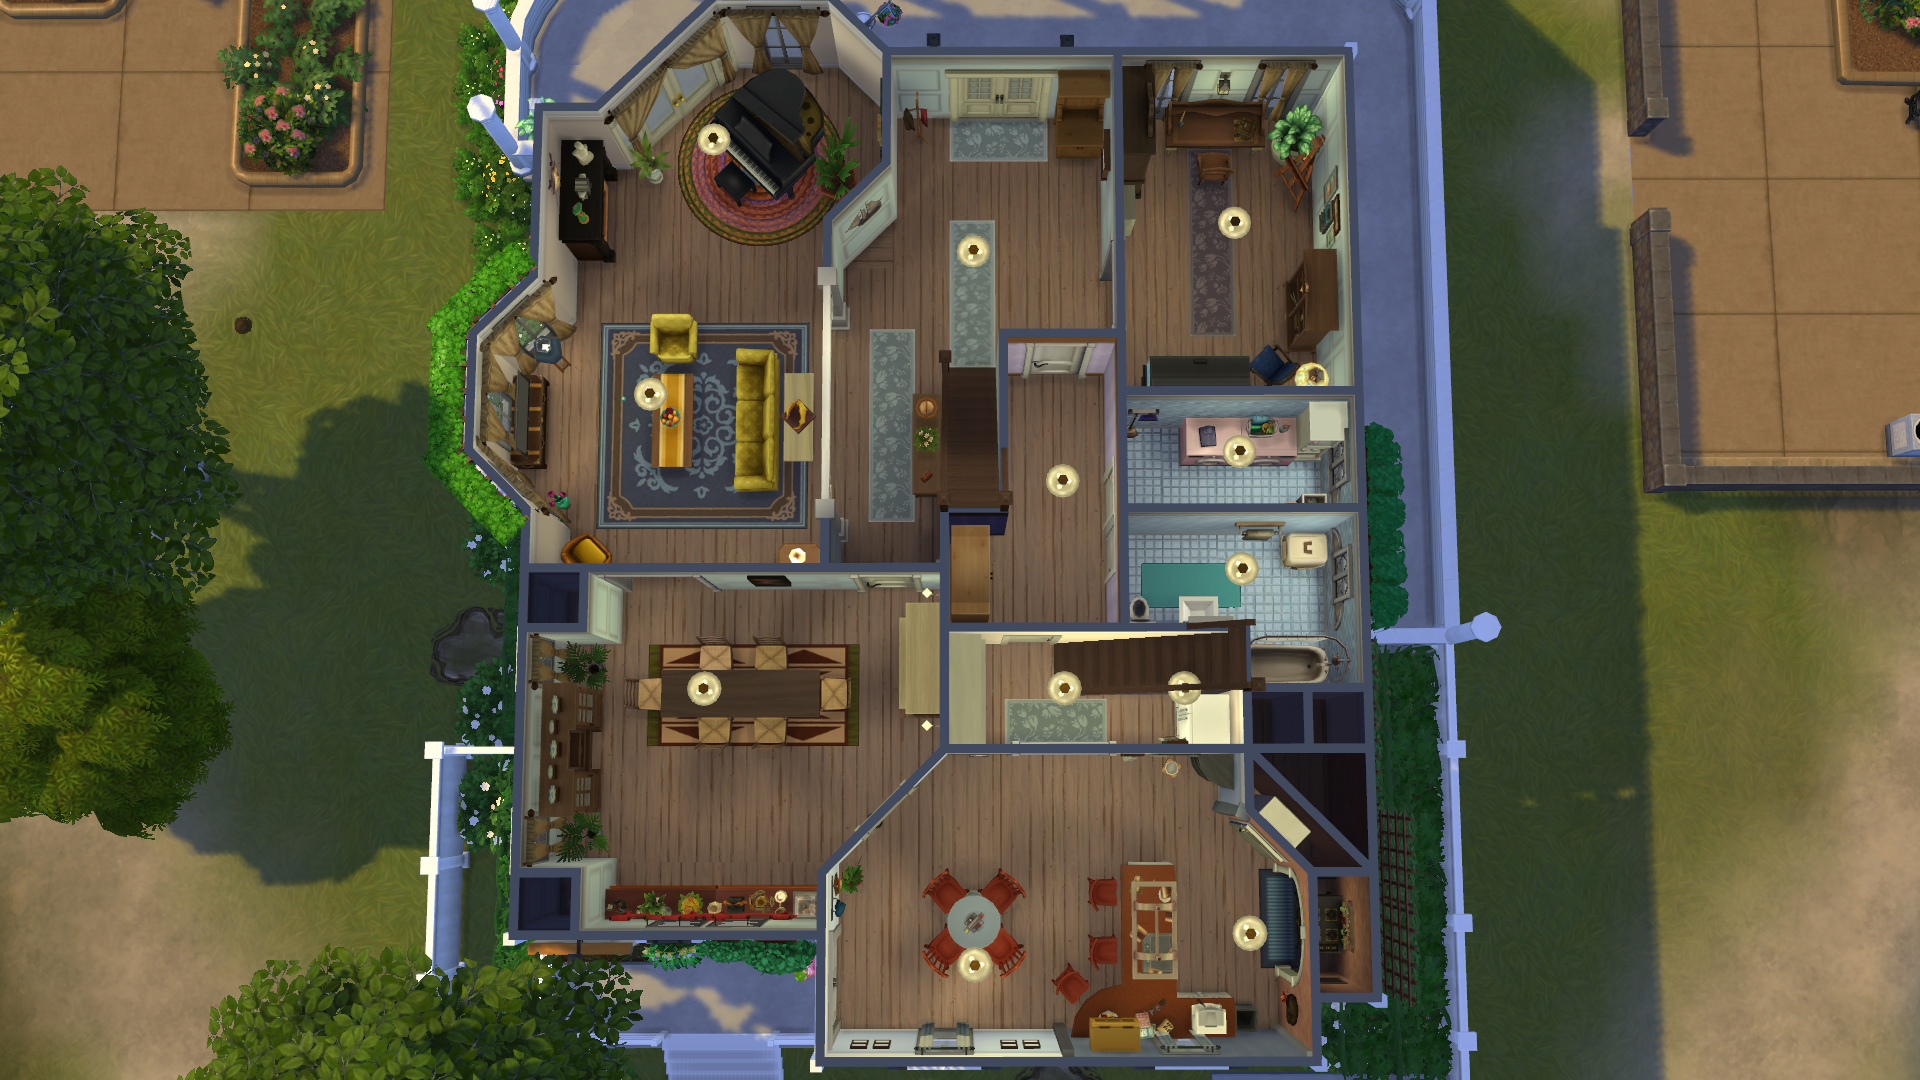 Mod The Sims The House From The Tv Show Sabrina The Teenage Witch